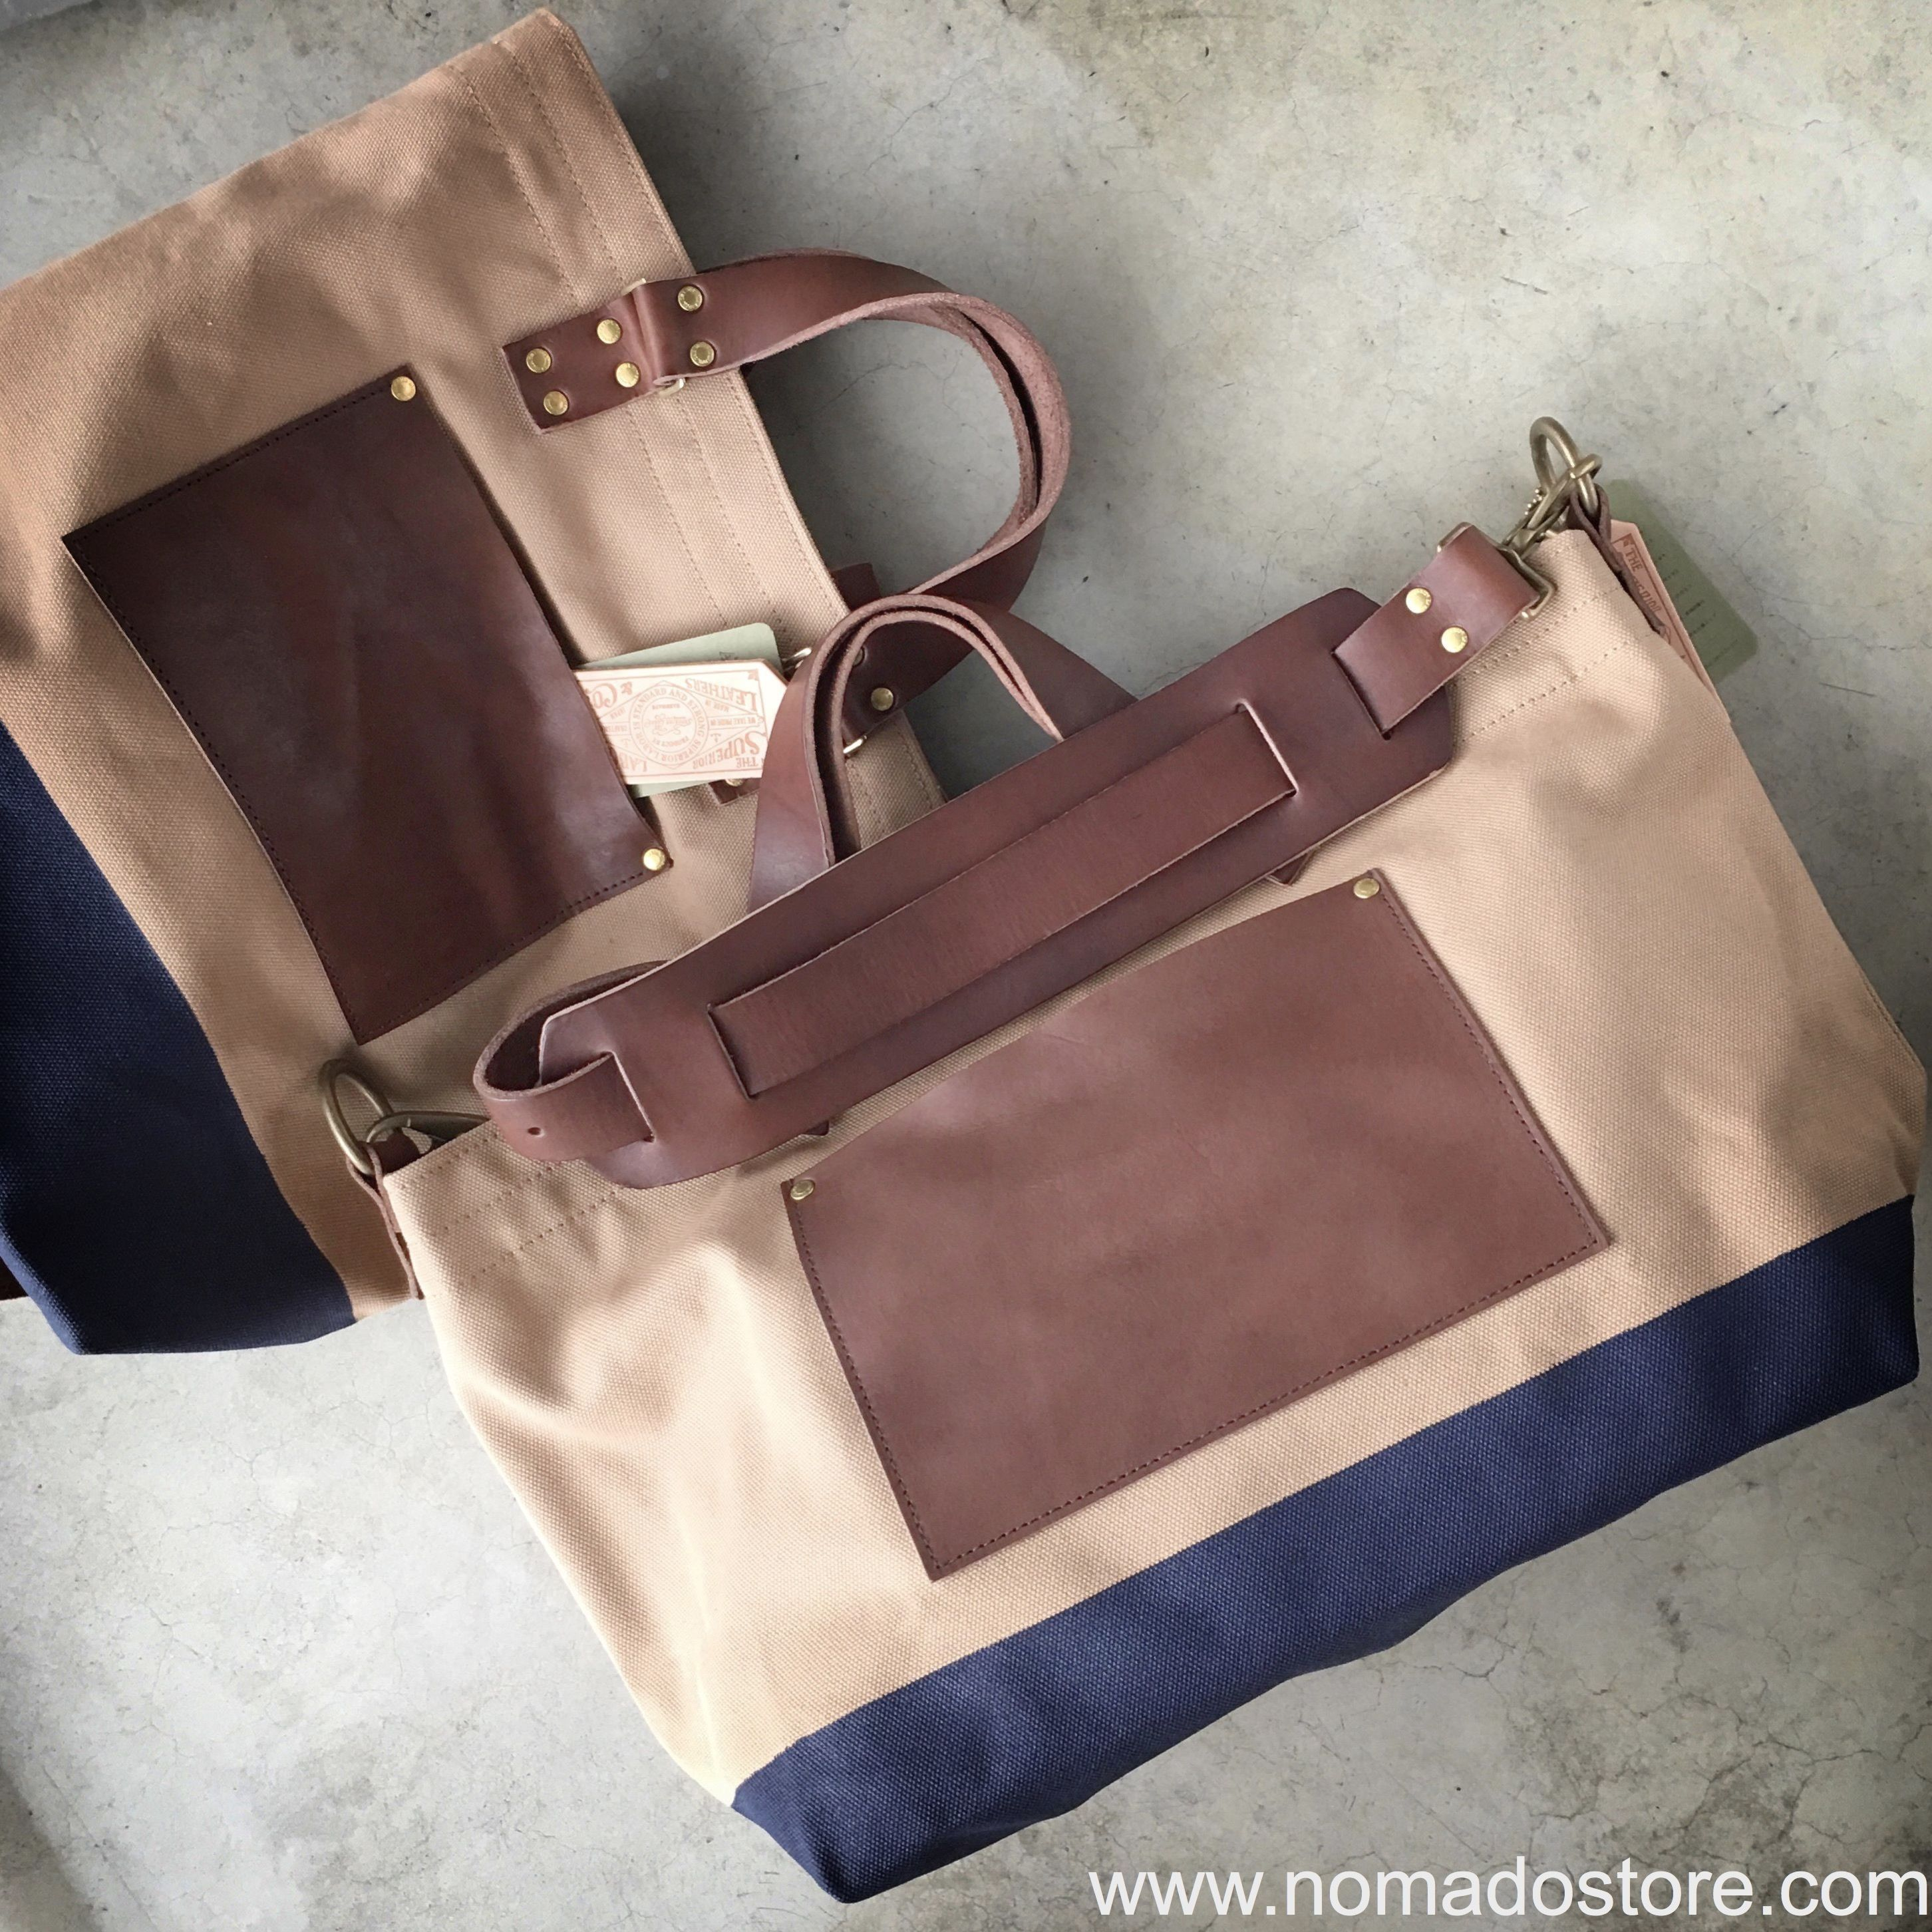 36385b8452 One of our best-selling bags, the beige/navy #superiorlabor Engineer  Shoulder Bag S is back in stock, but this time you can also get this colour  combo in ...